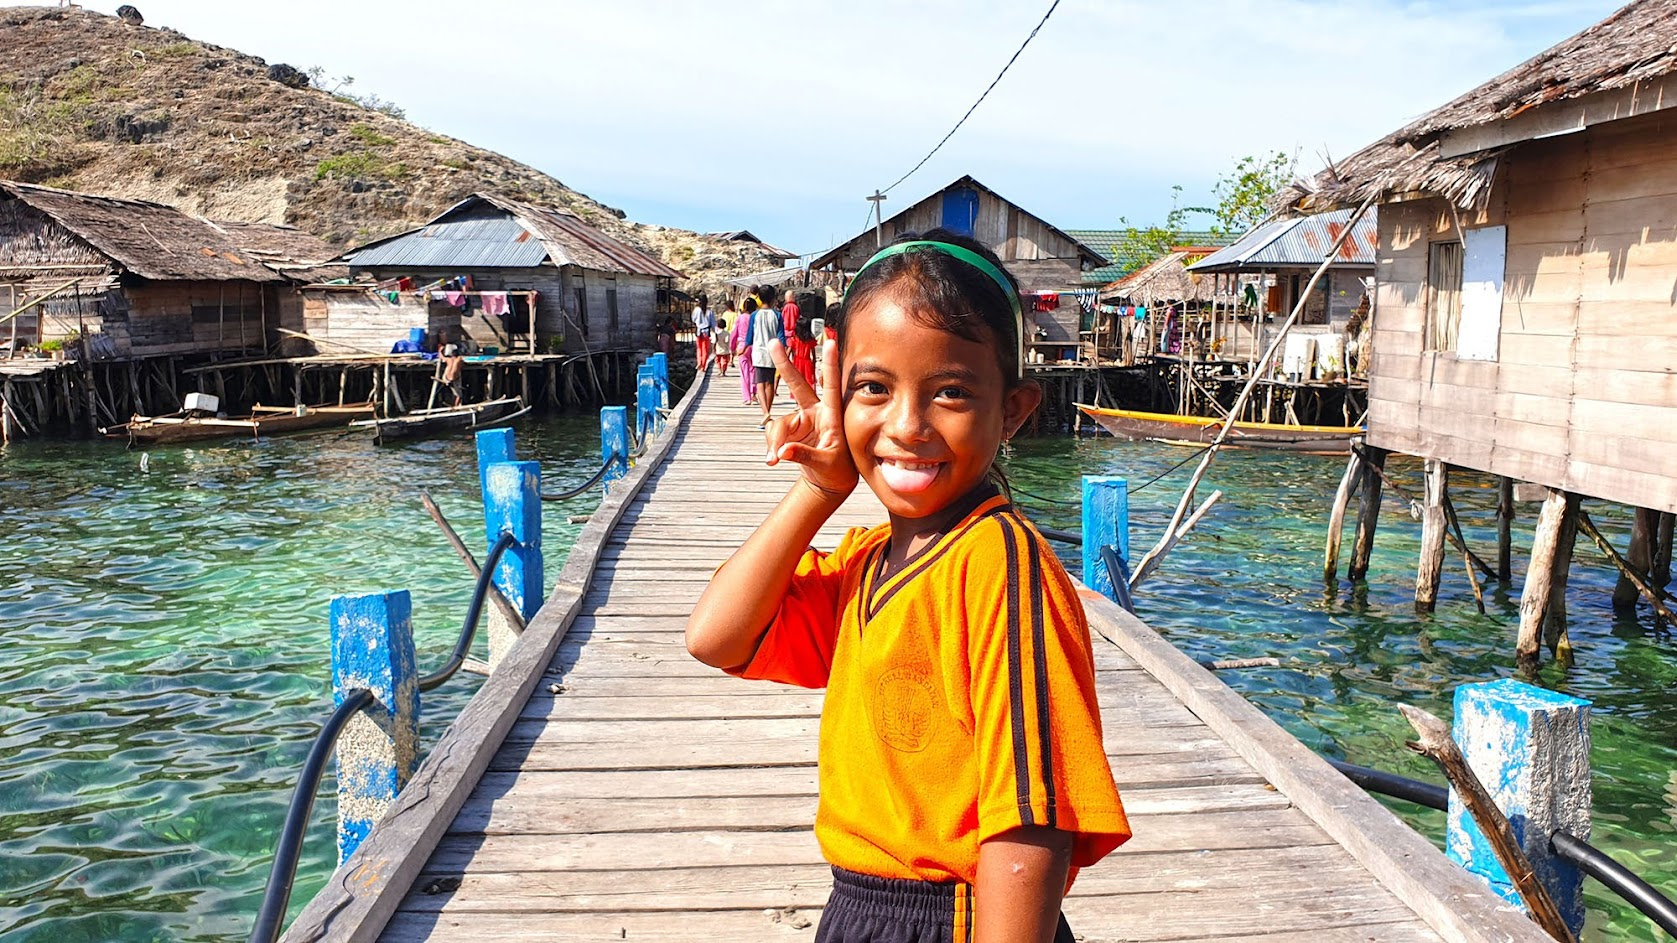 DIAS 90 a 98 –Visitar as ILHAS TOGEAN e o povo Bajau, os Ciganos do Mar